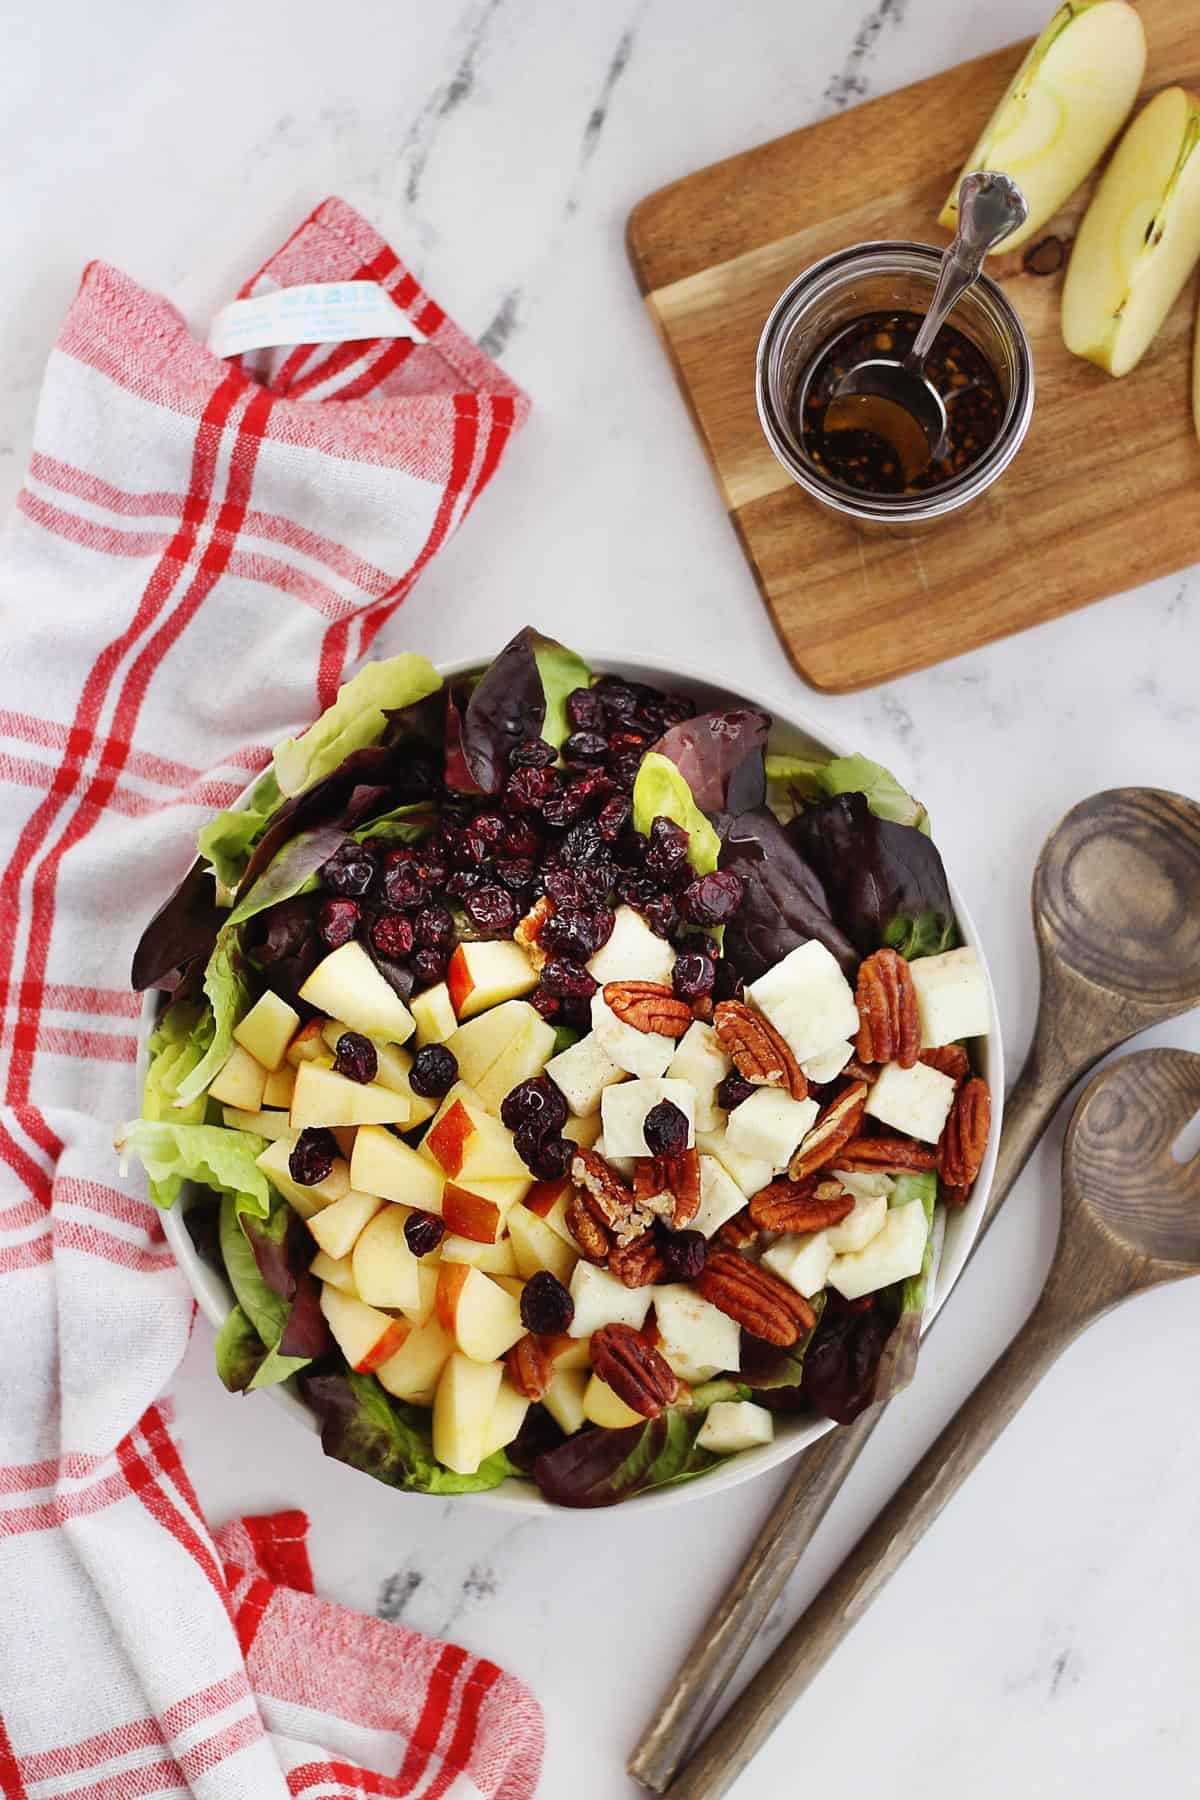 Halloumi salad with apples and cranberries